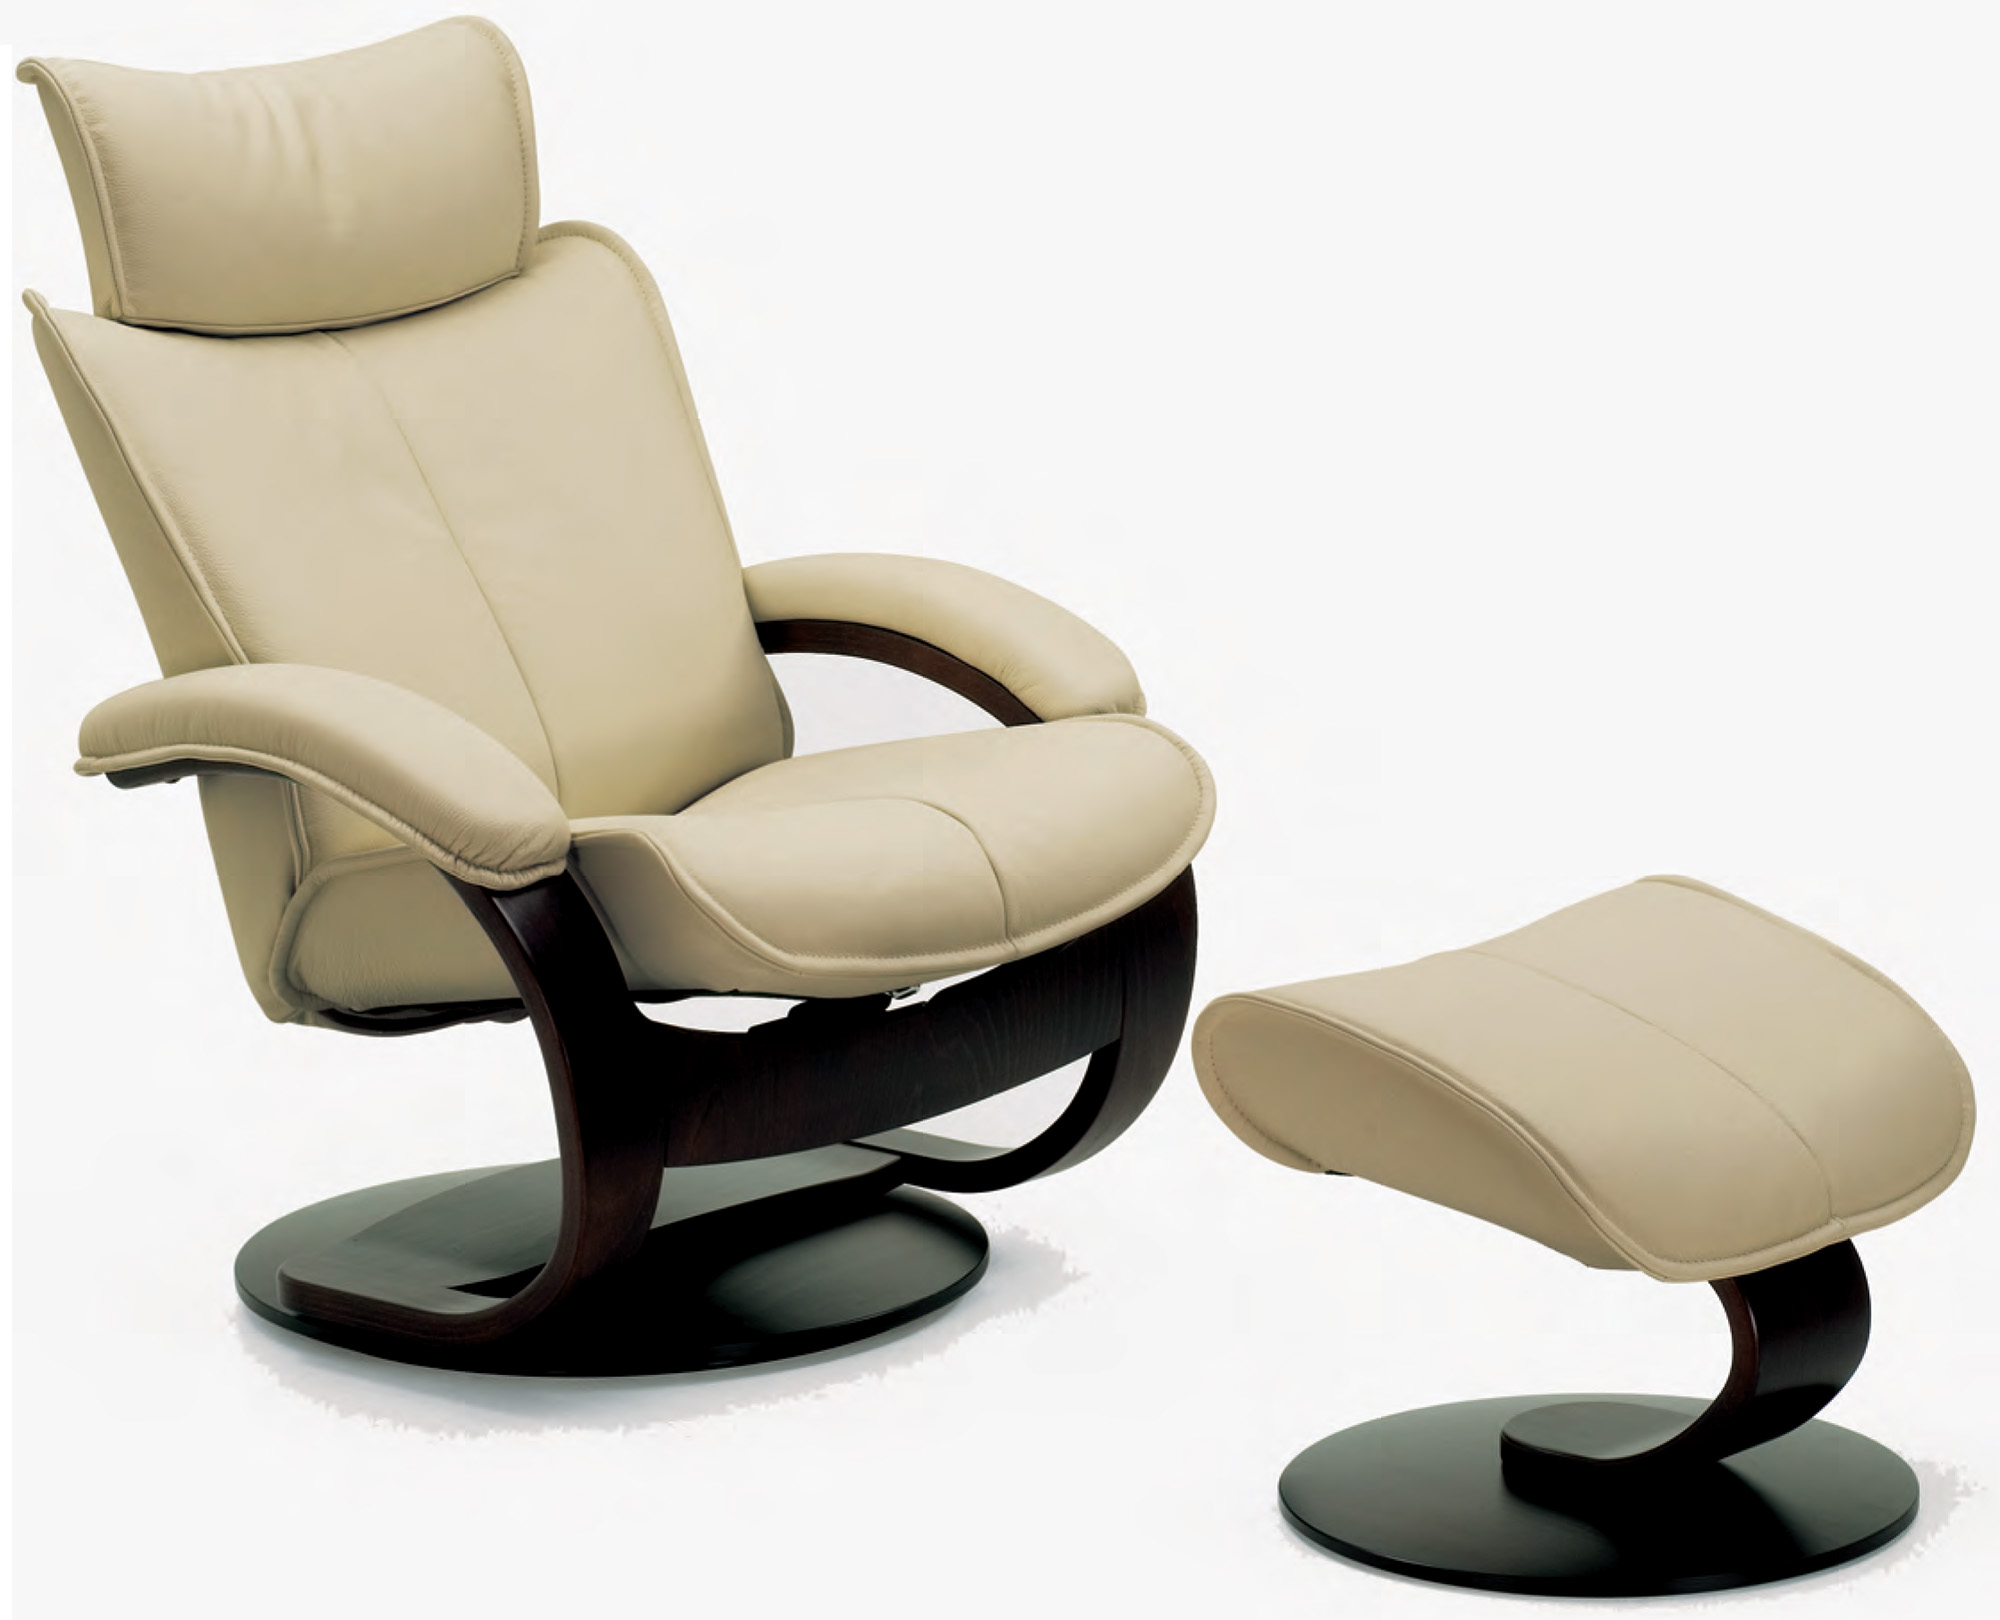 Fjords Ona Ergonomic Leather Recliner Chair Ottoman